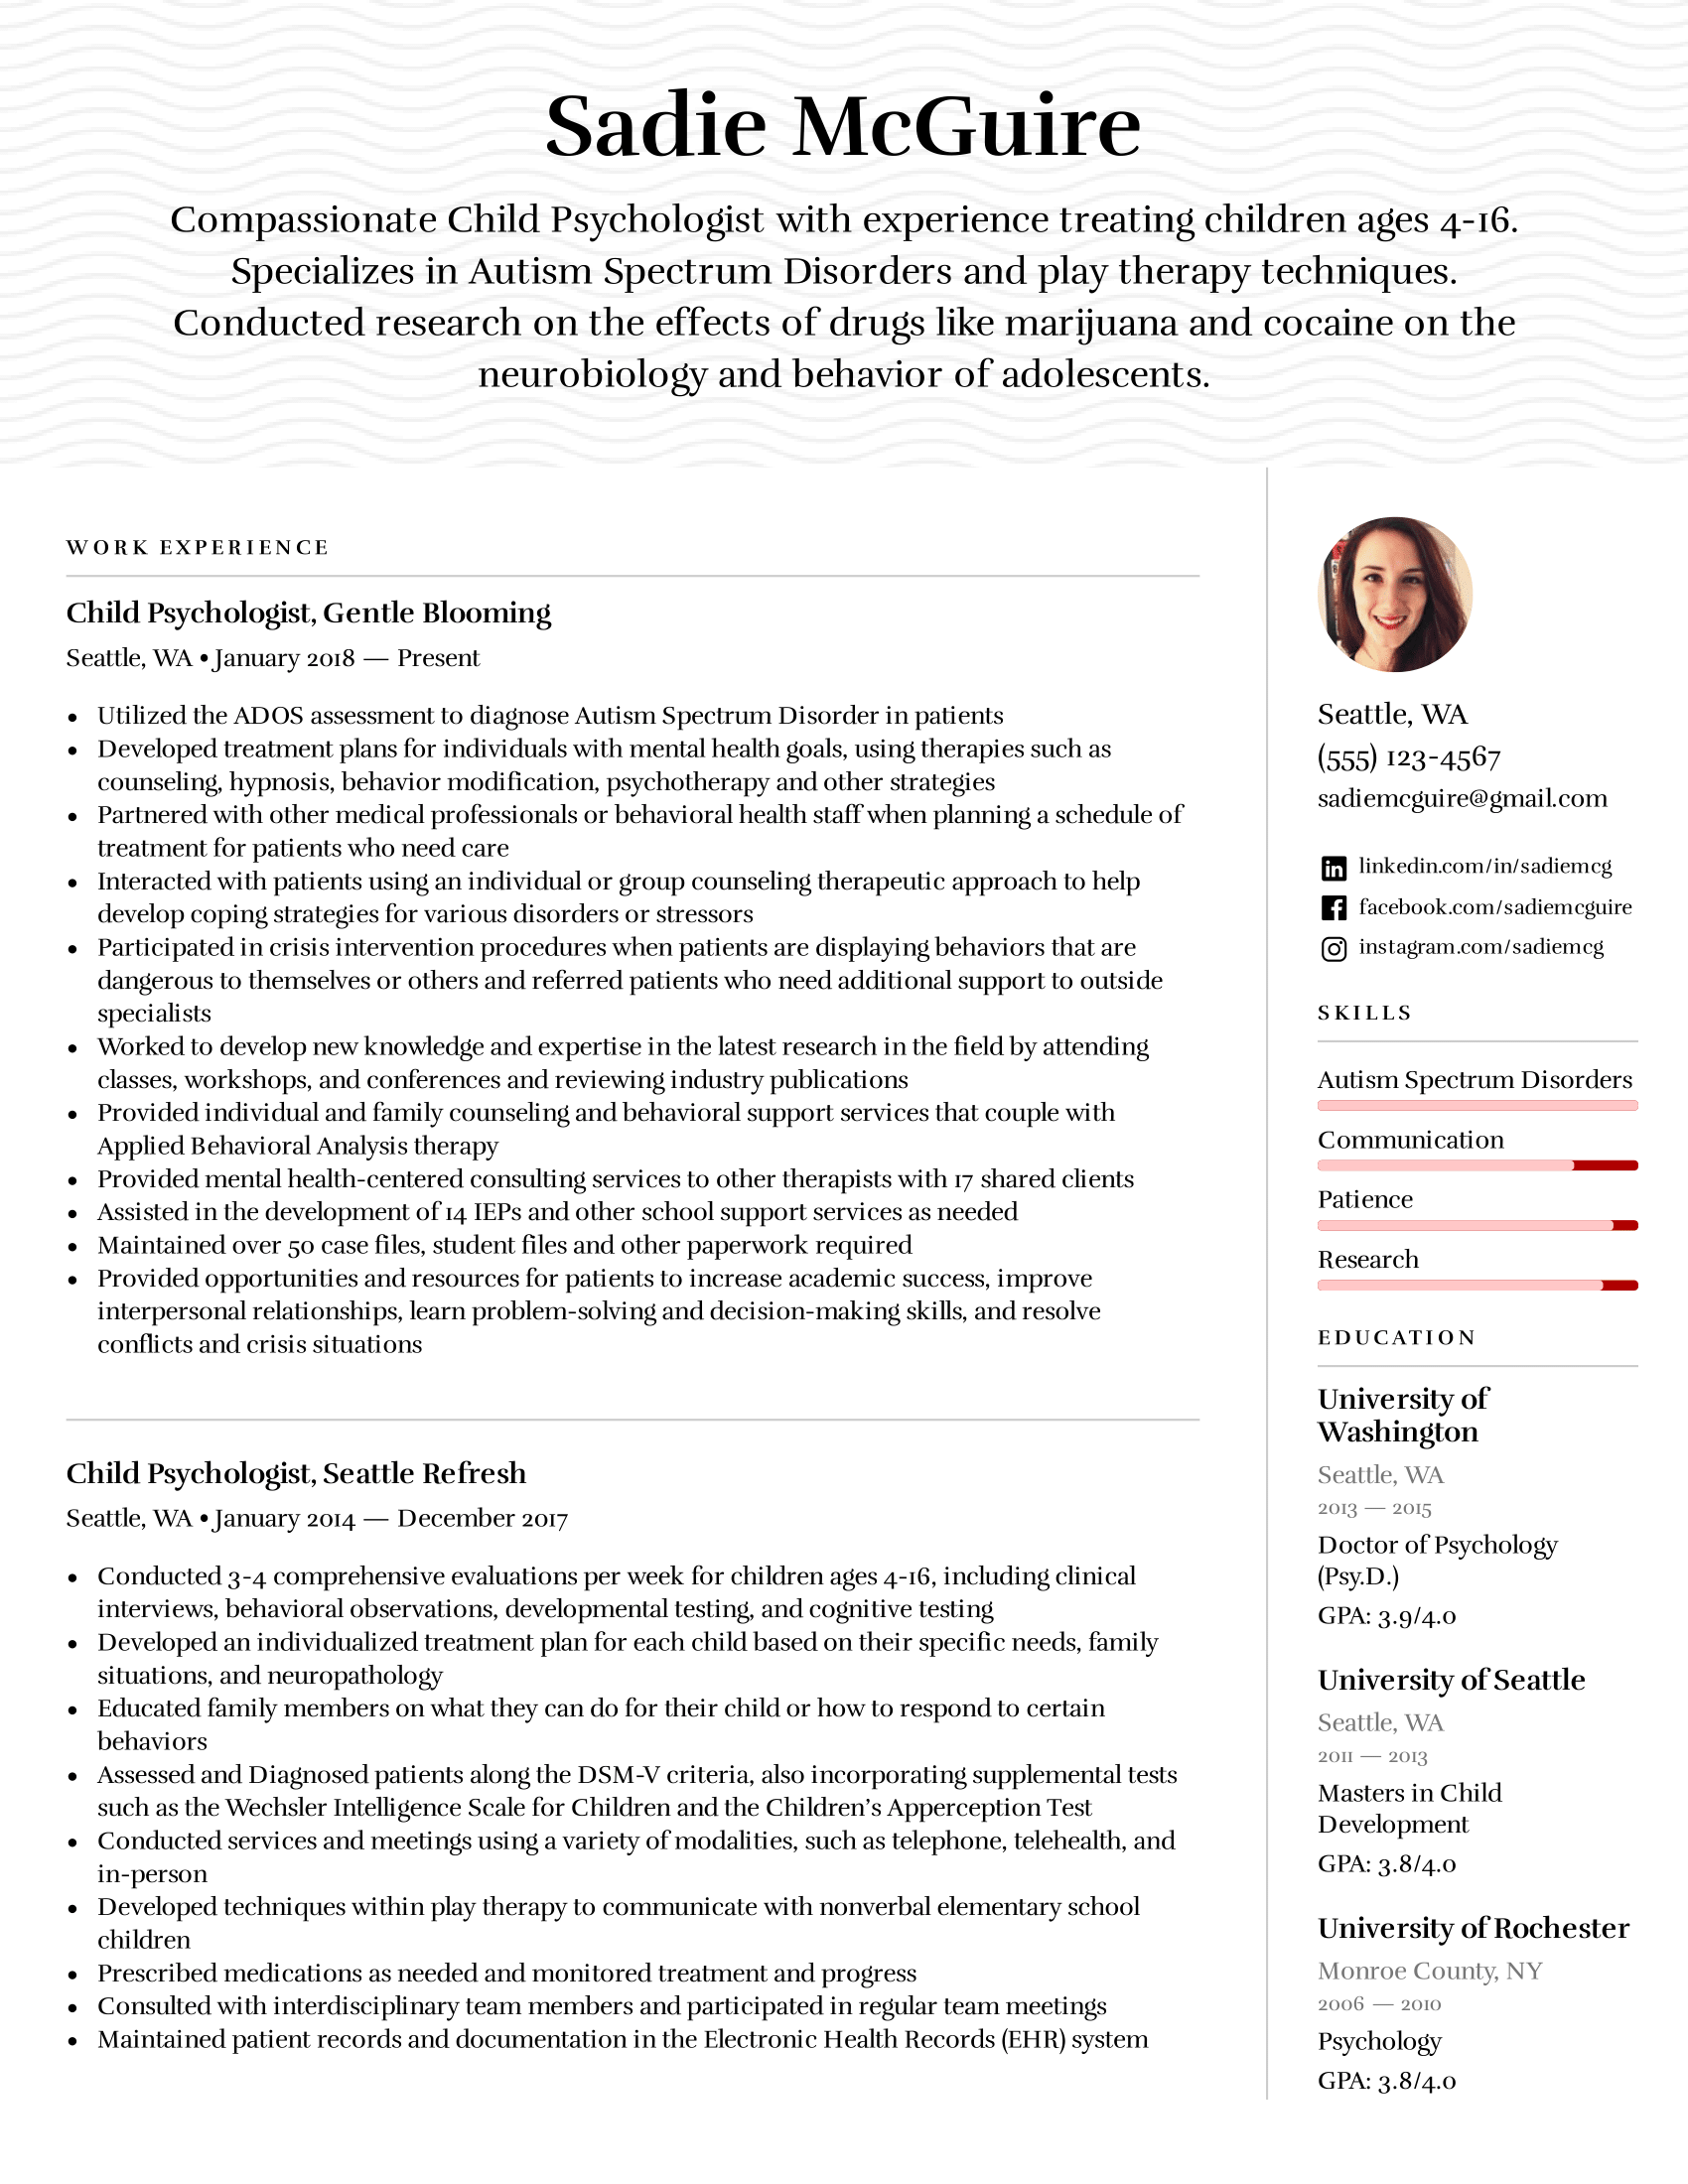 Child Psychologist Resume Example